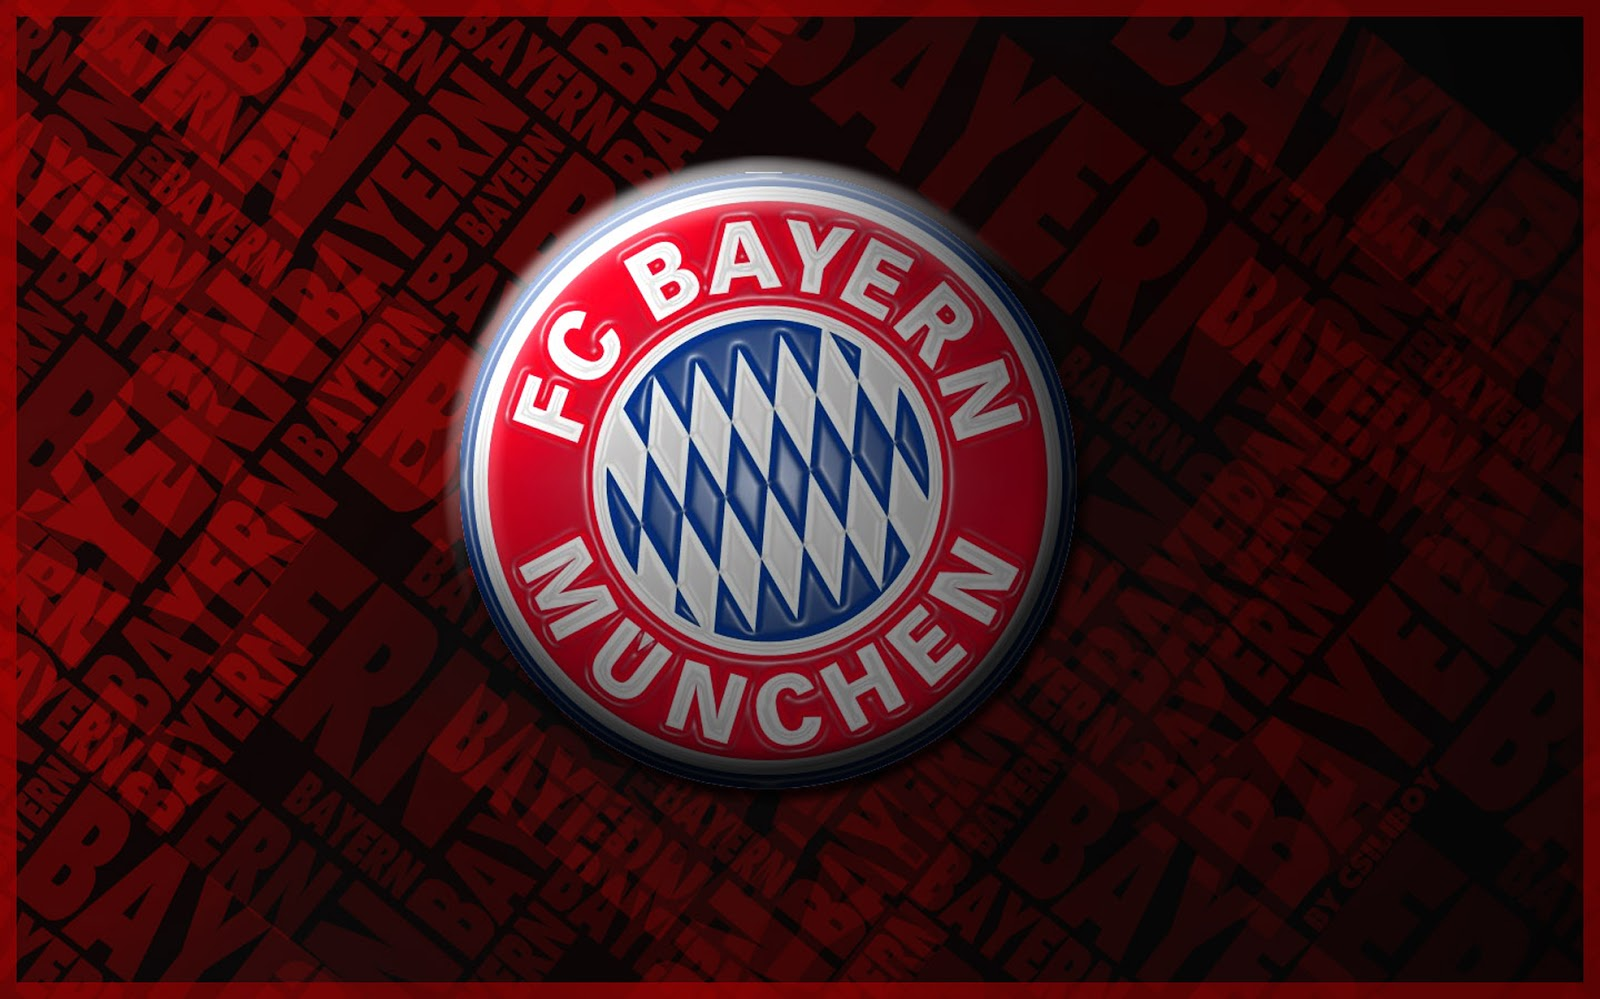 FC Bayer Munchen Wallpaper Perfect Wallpaper